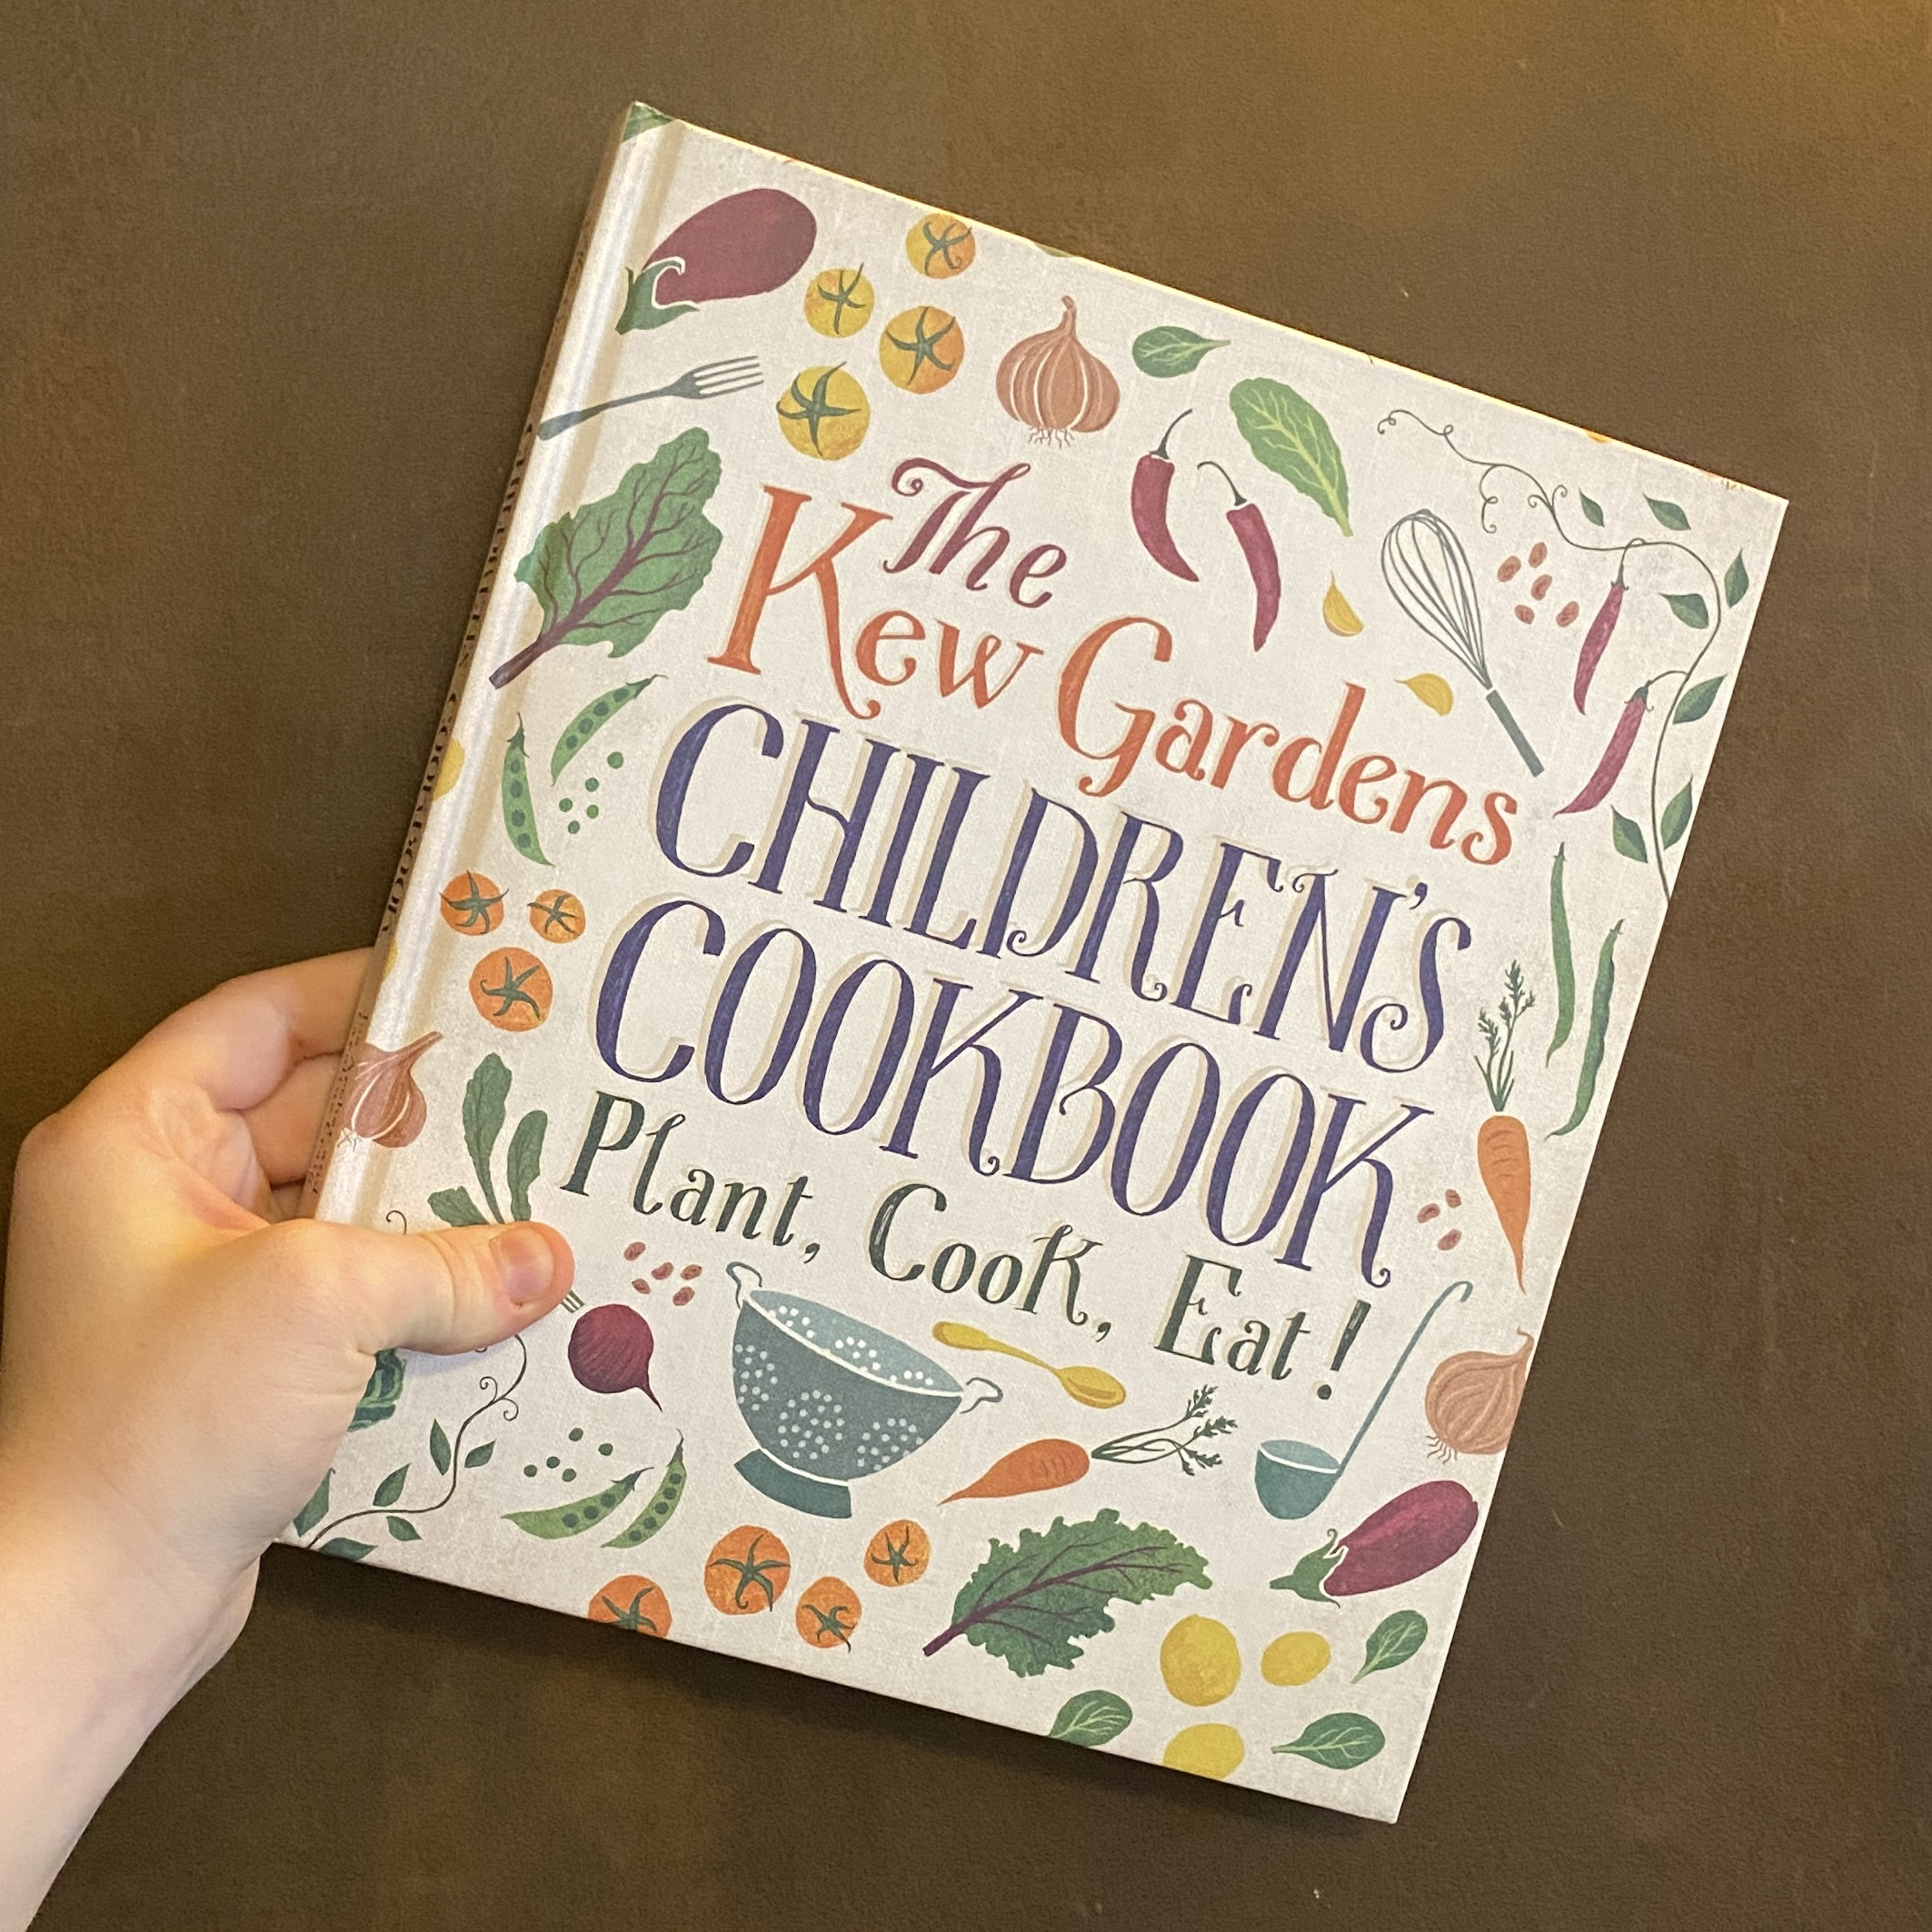 The Kew Gardens Children's Cookbook: Plant, Cook, Eat